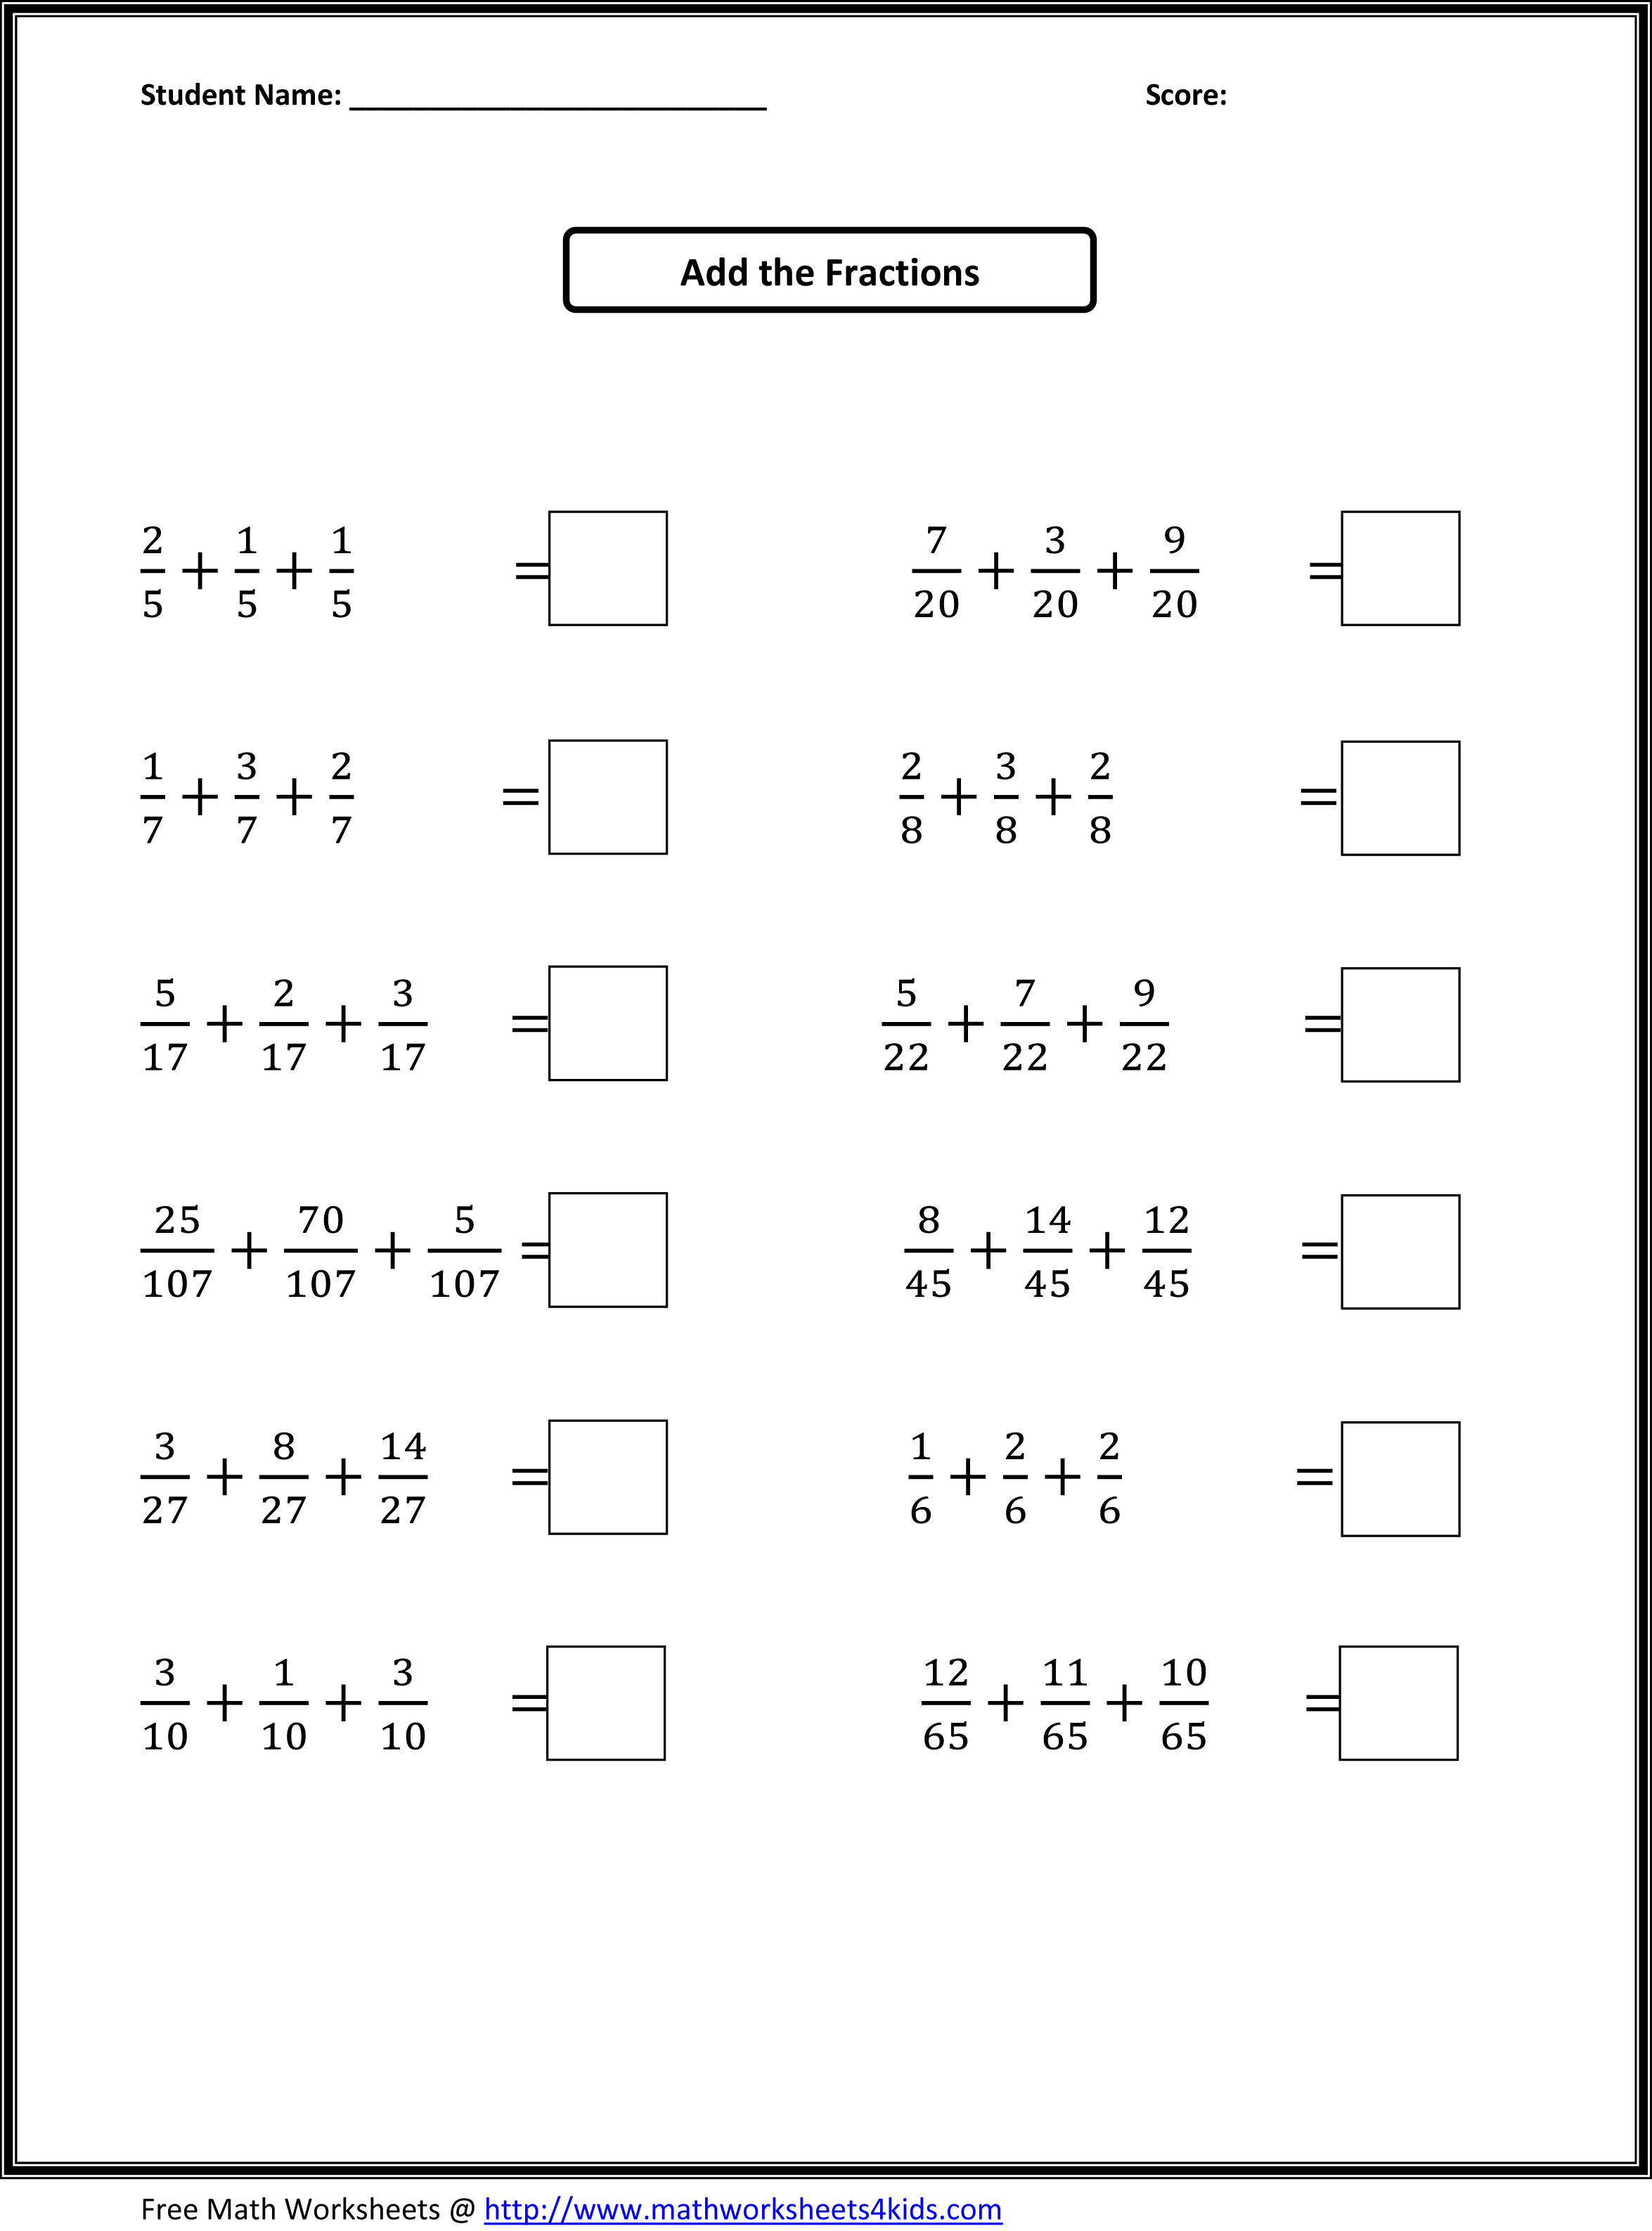 math worksheet : fraction 4th grade worksheets  gamersn : Fraction Worksheets For 1st Grade